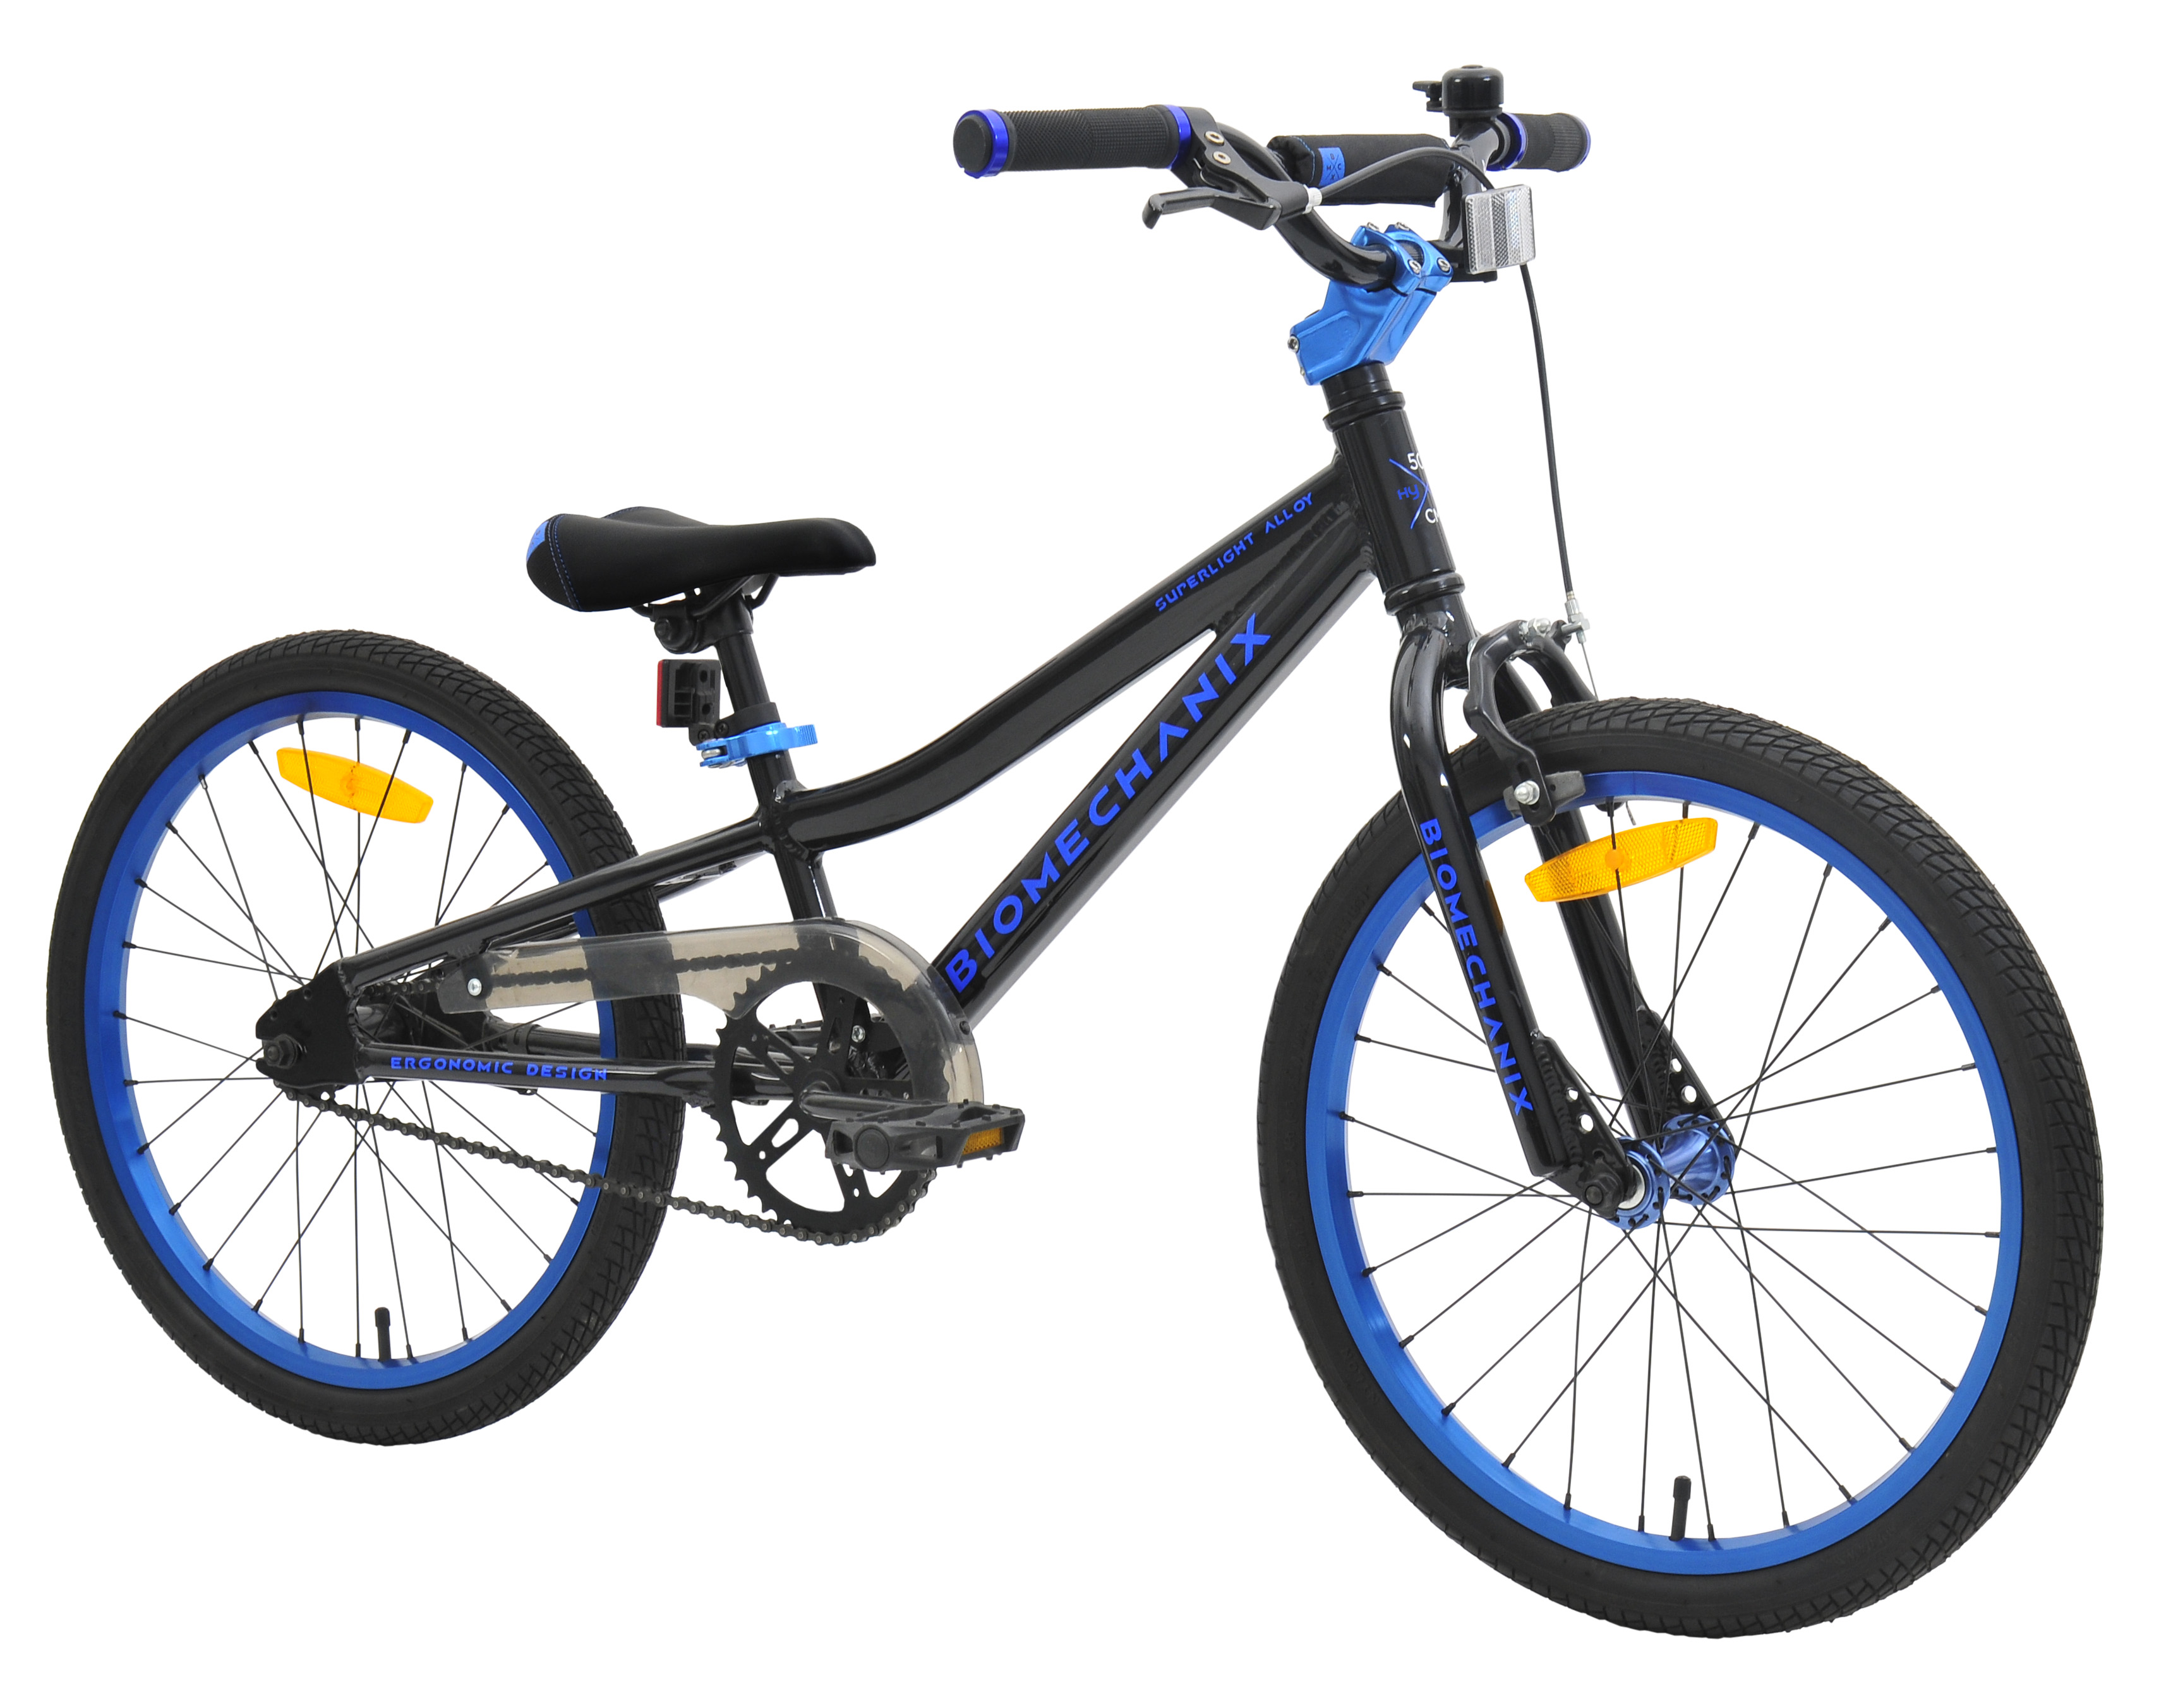 5be069bb204 Hyper Bikes – Bicycles & Accessories of Quality & Value